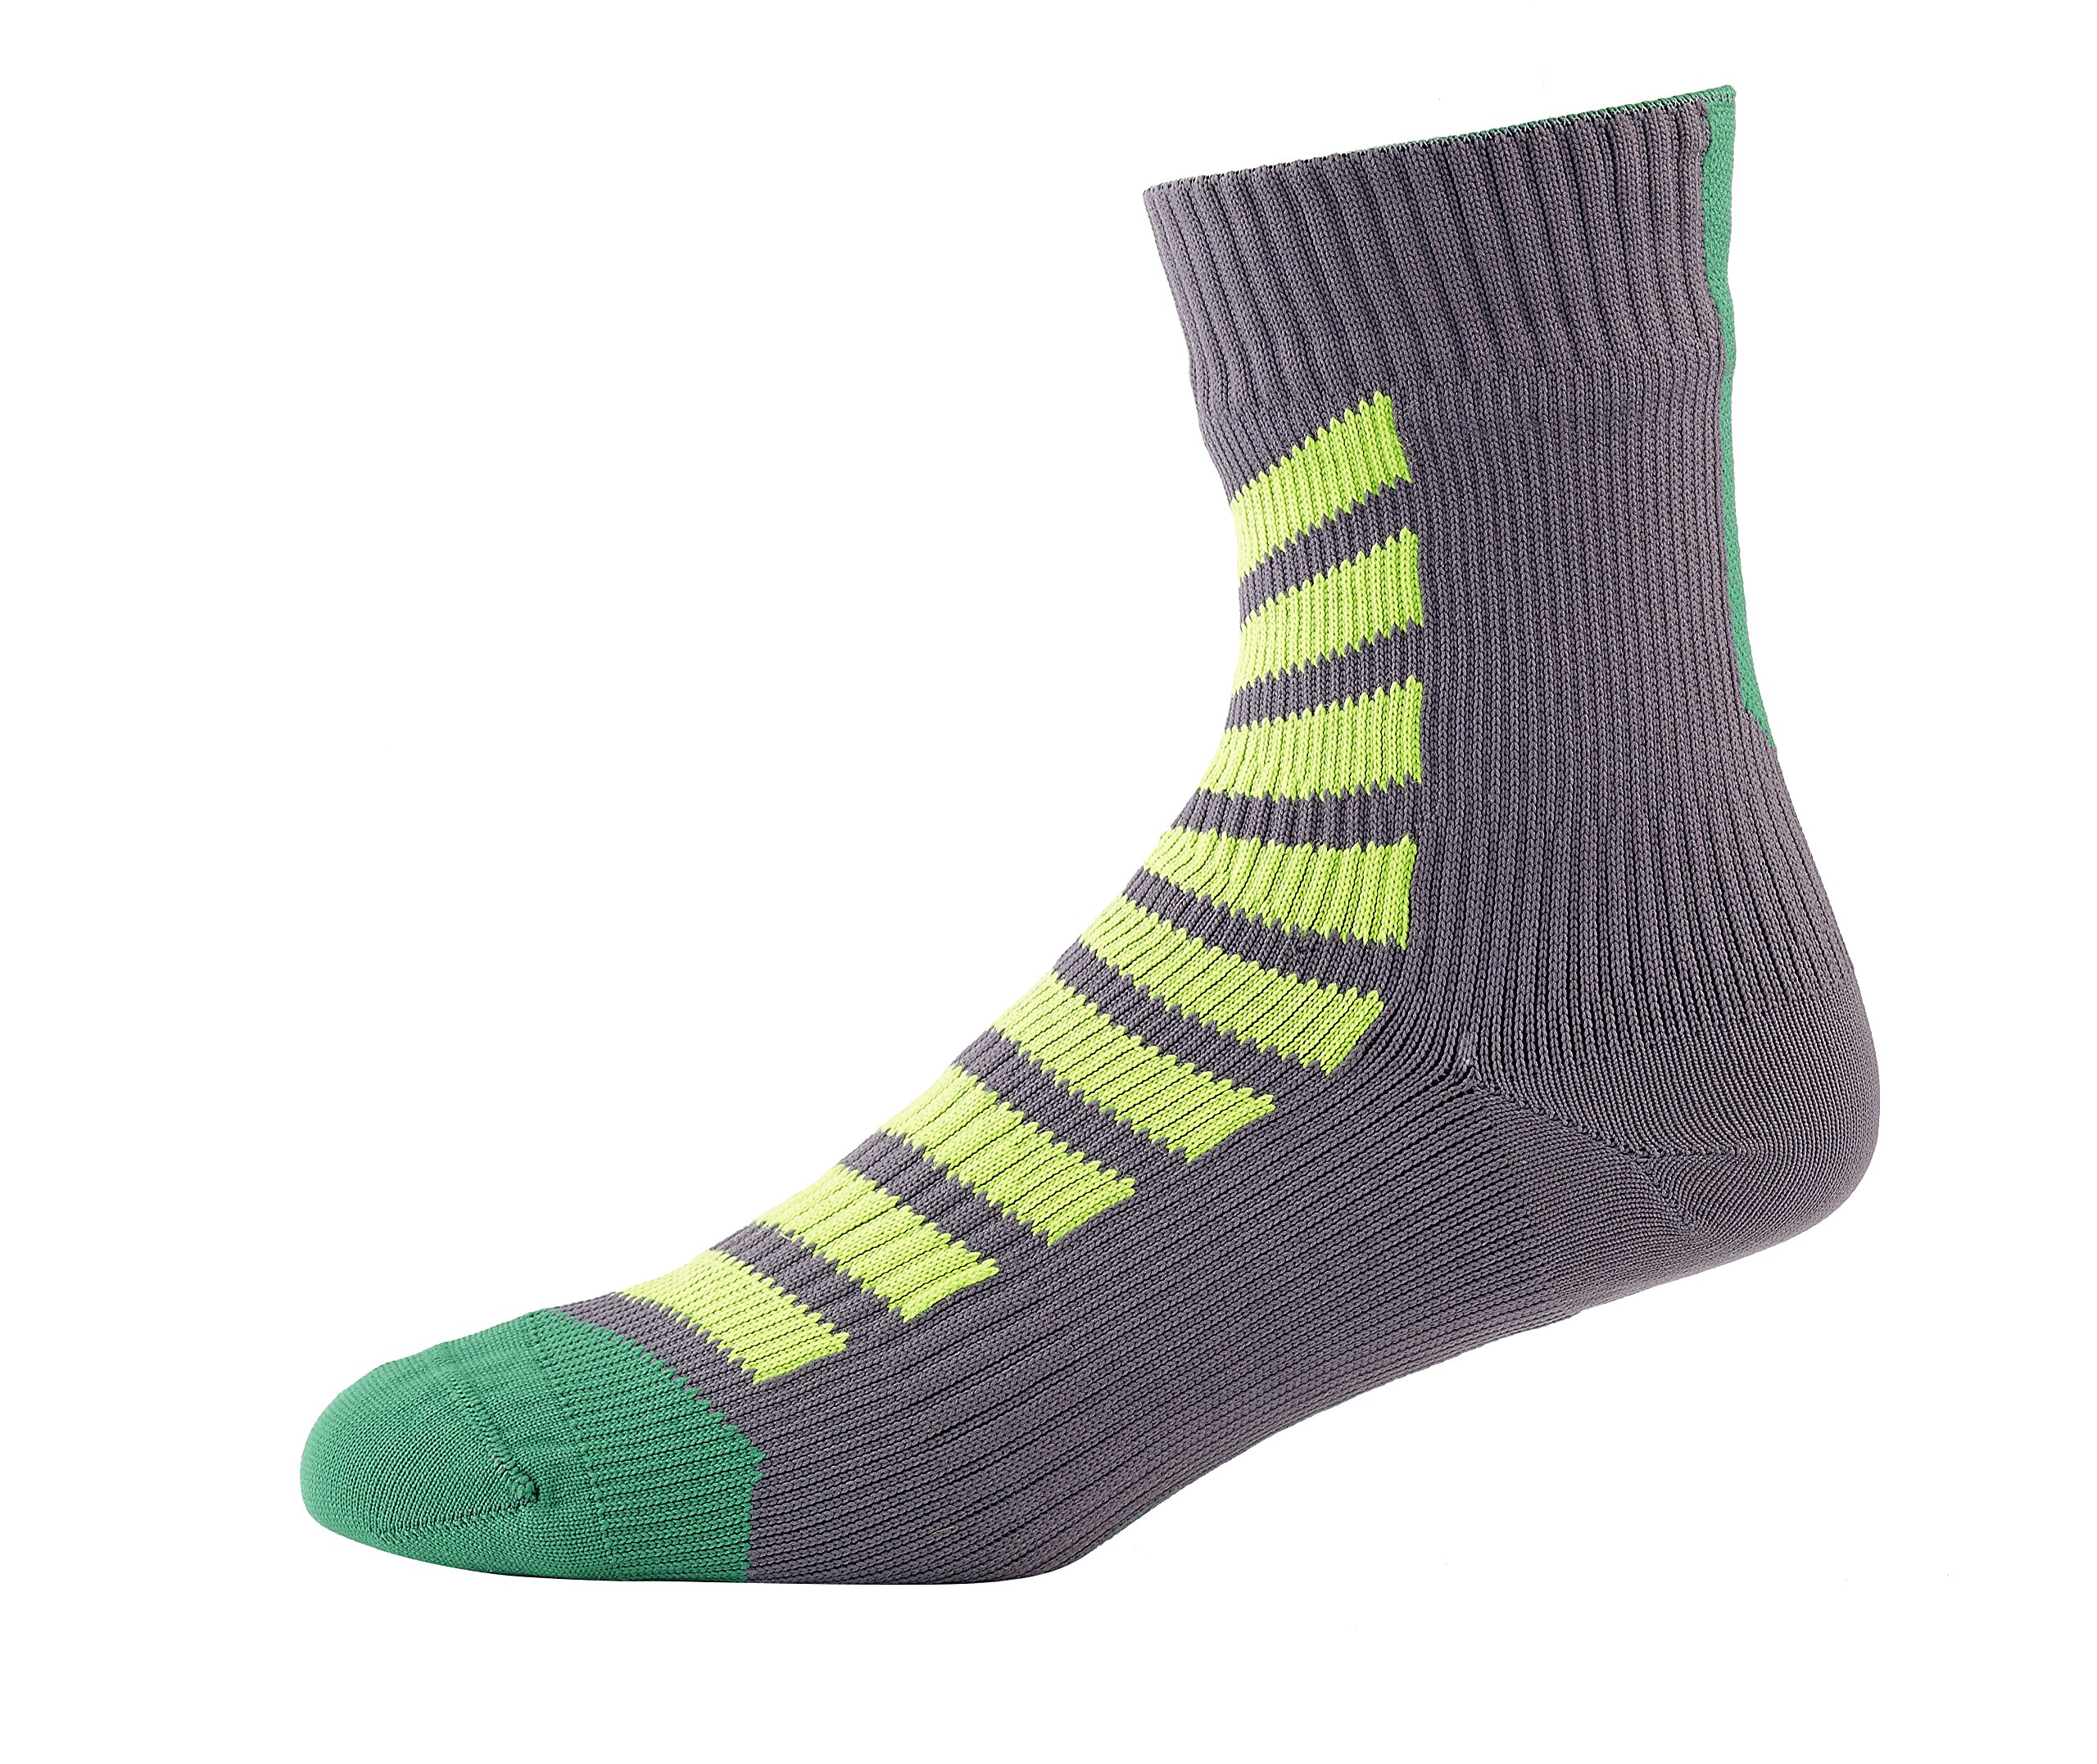 SEALSKINZ MTB Ankle Socks with Hydrostop, Small - Anthracite/Leaf/Lime. With a Helicase brand sock ring by SEALSKINZ